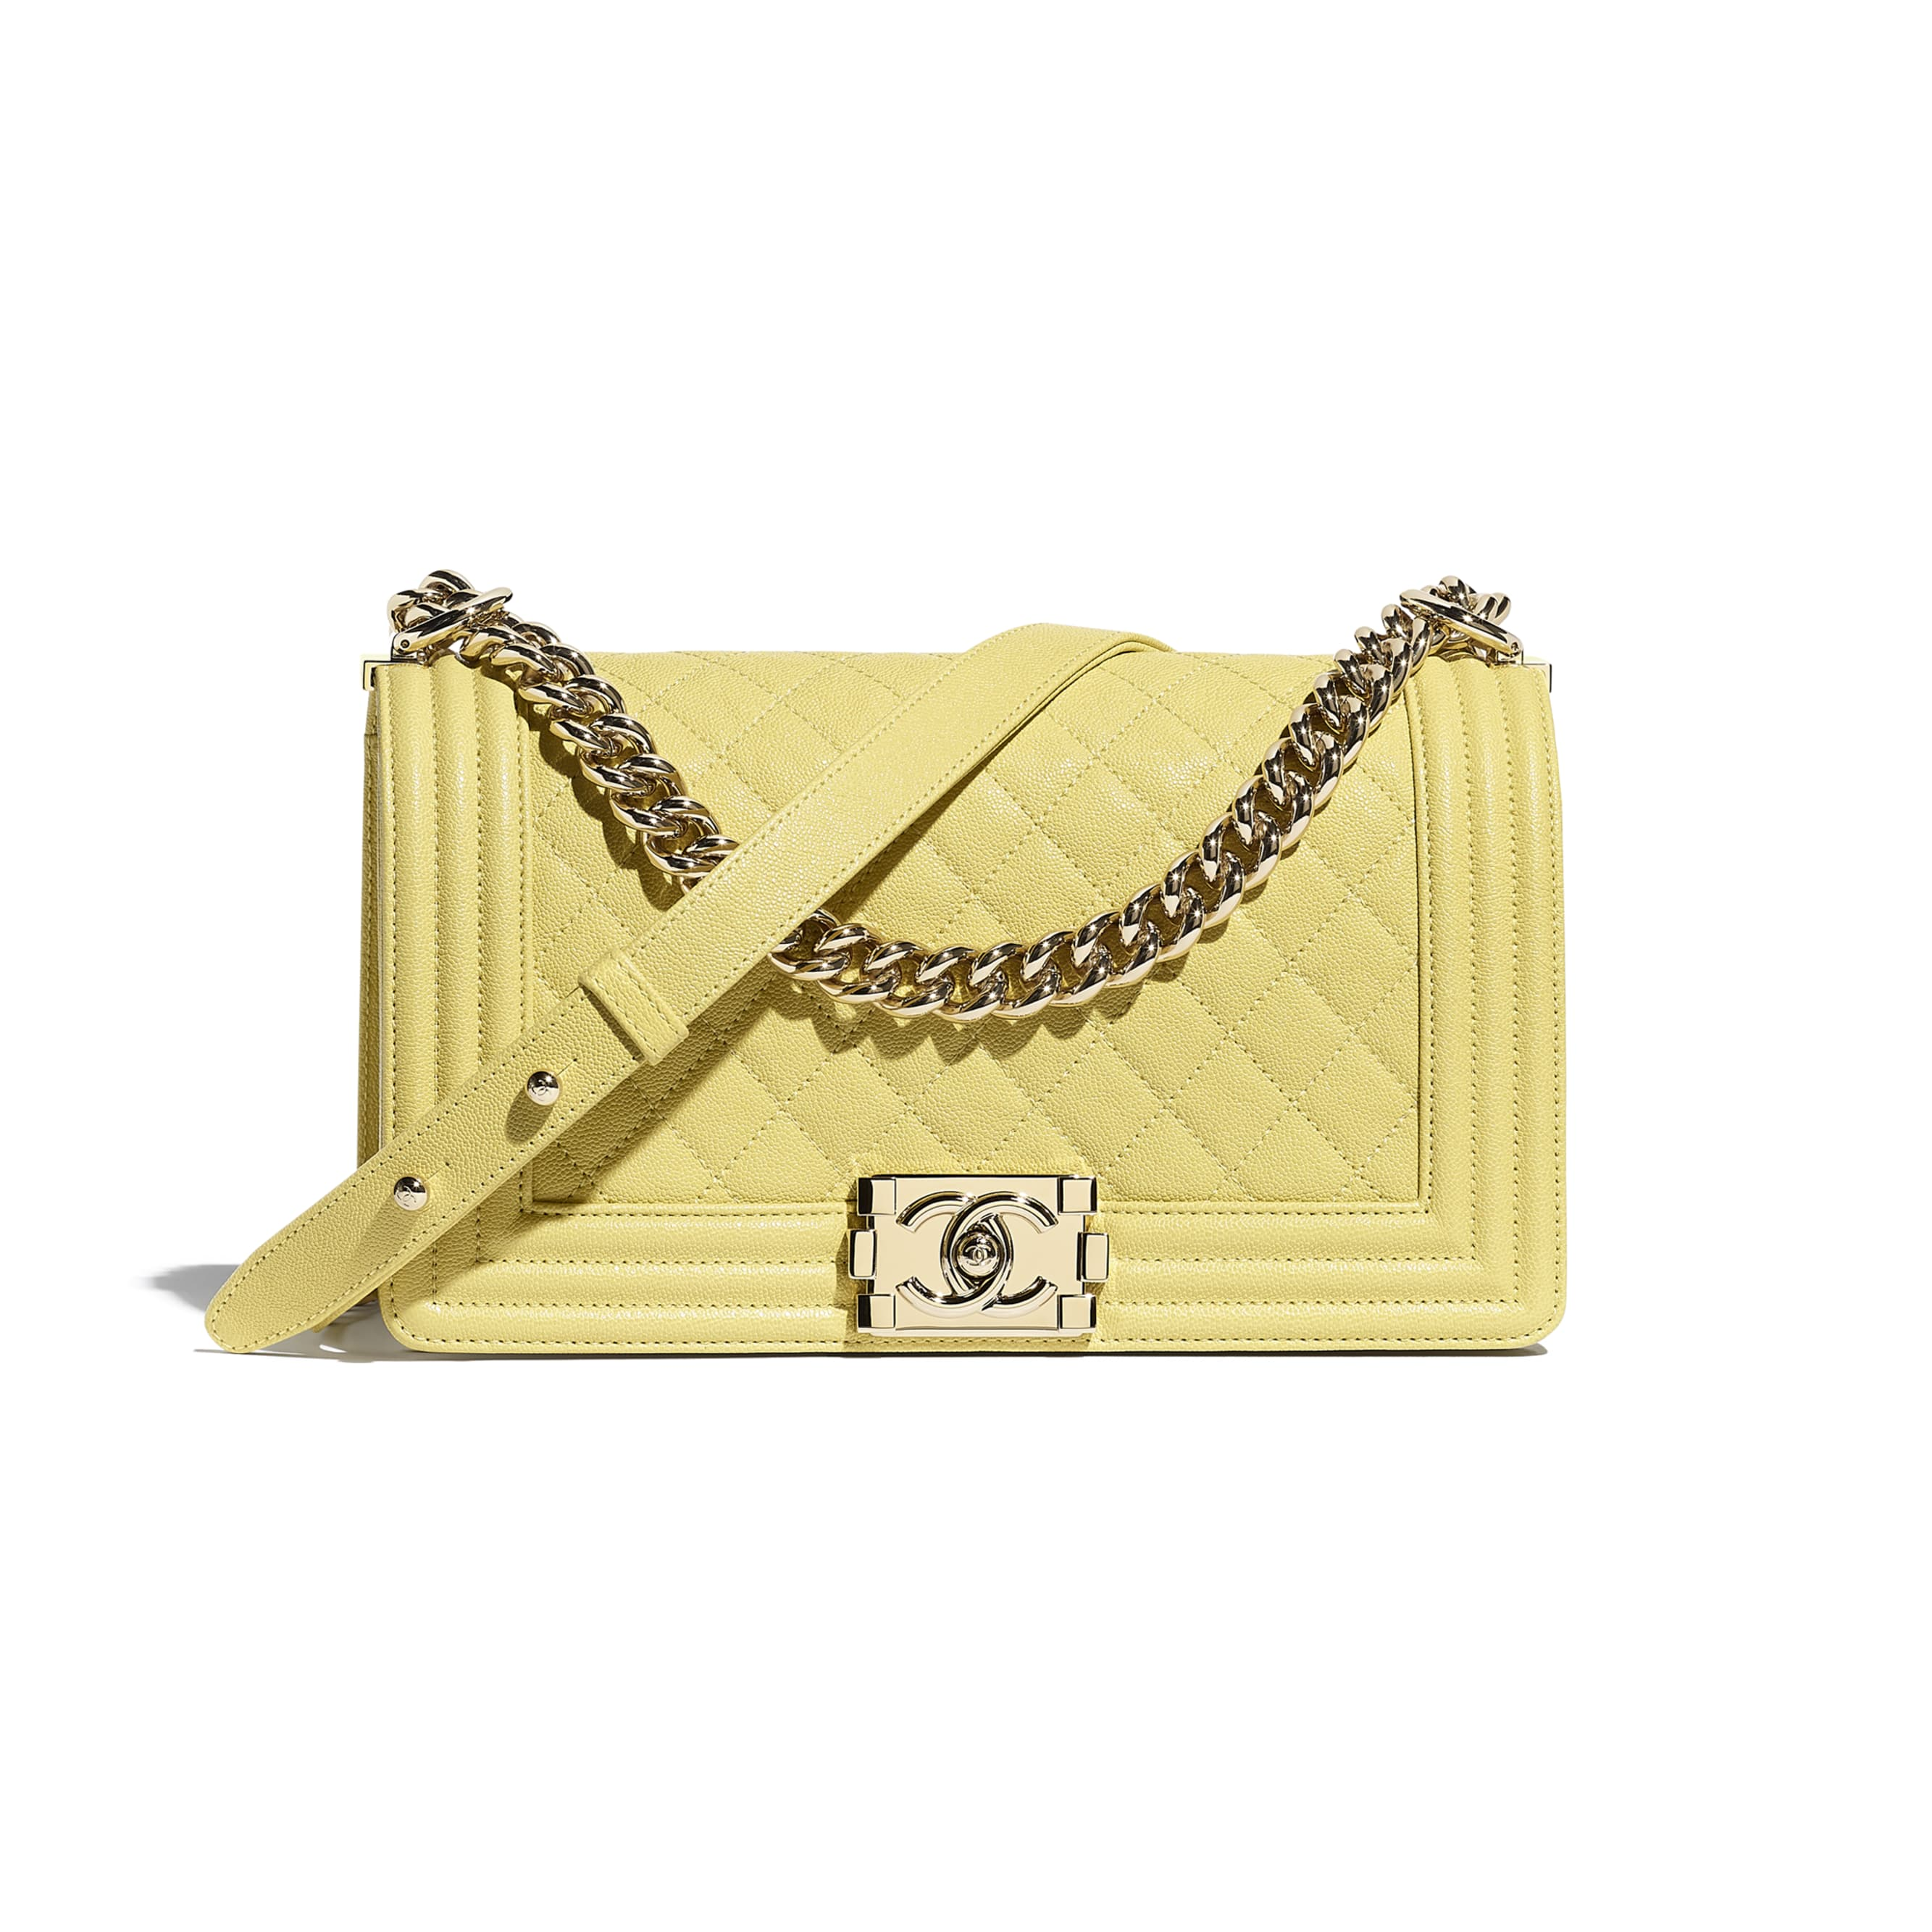 BOY CHANEL Handbag - Yellow - Grained Calfskin & Gold-Tone Metal - CHANEL - Default view - see standard sized version